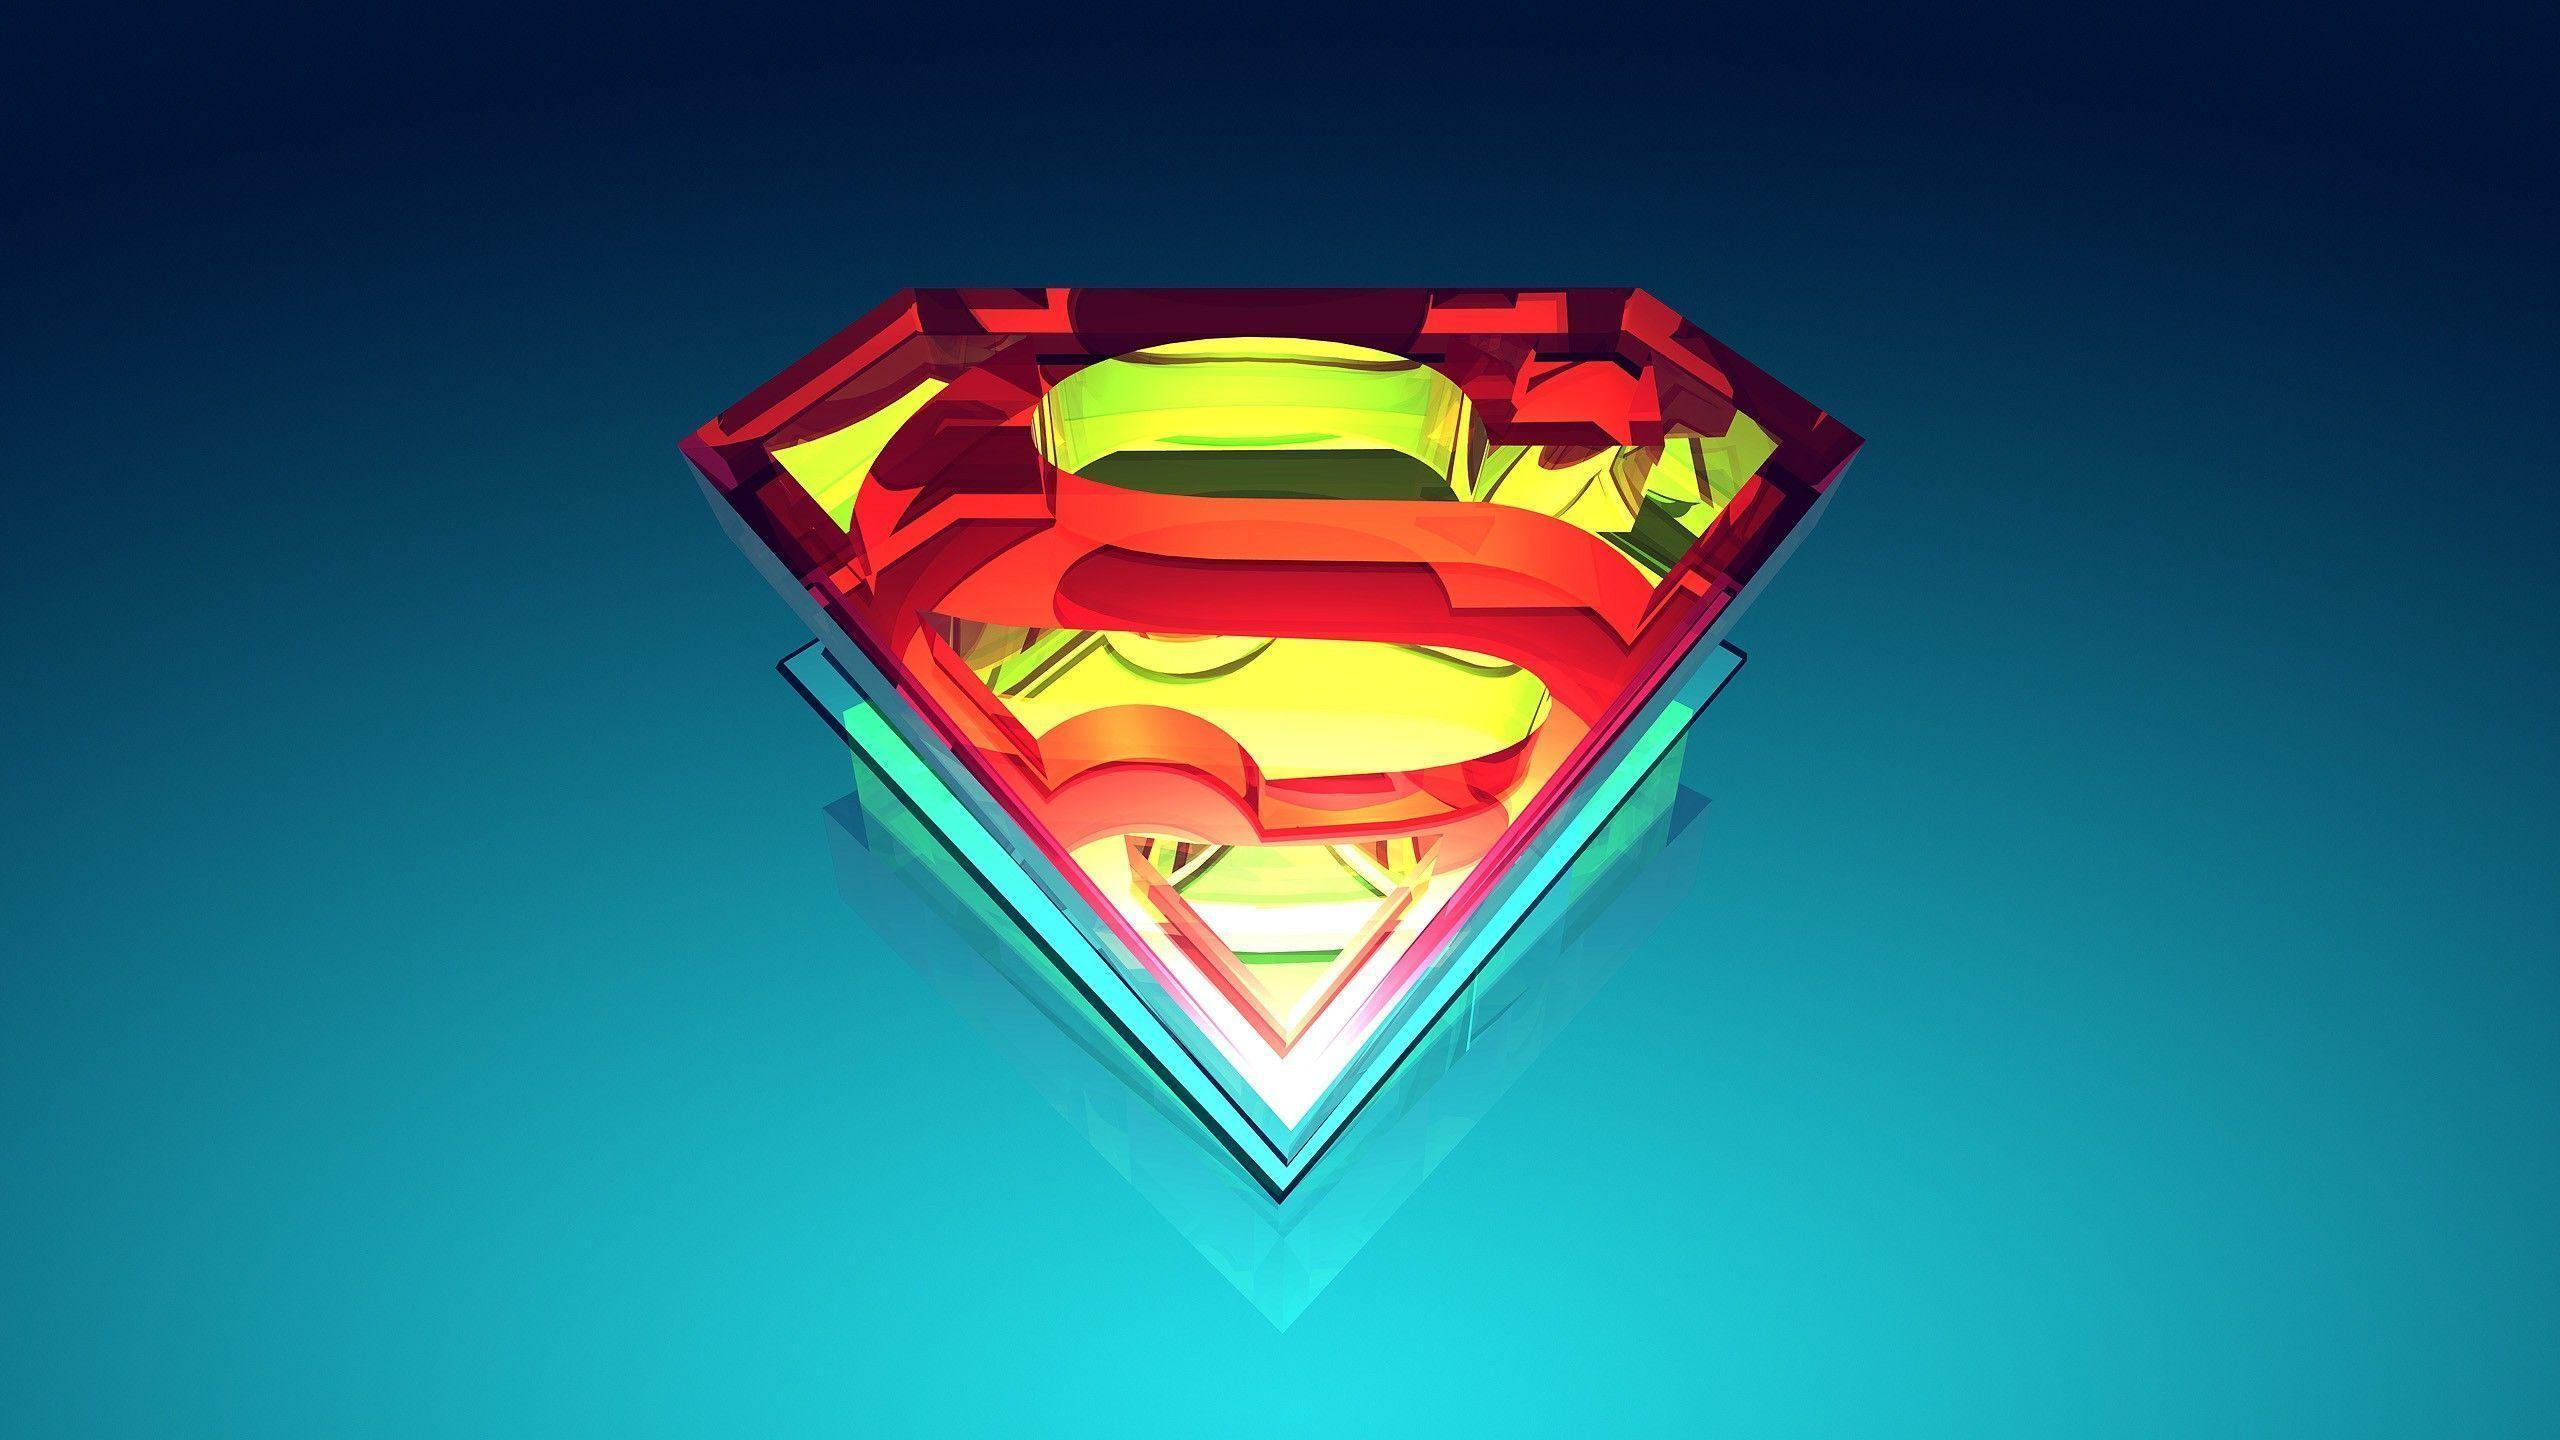 Logo Superman Wallpaper HD Free Download | Wallpapers, Backgrounds ...